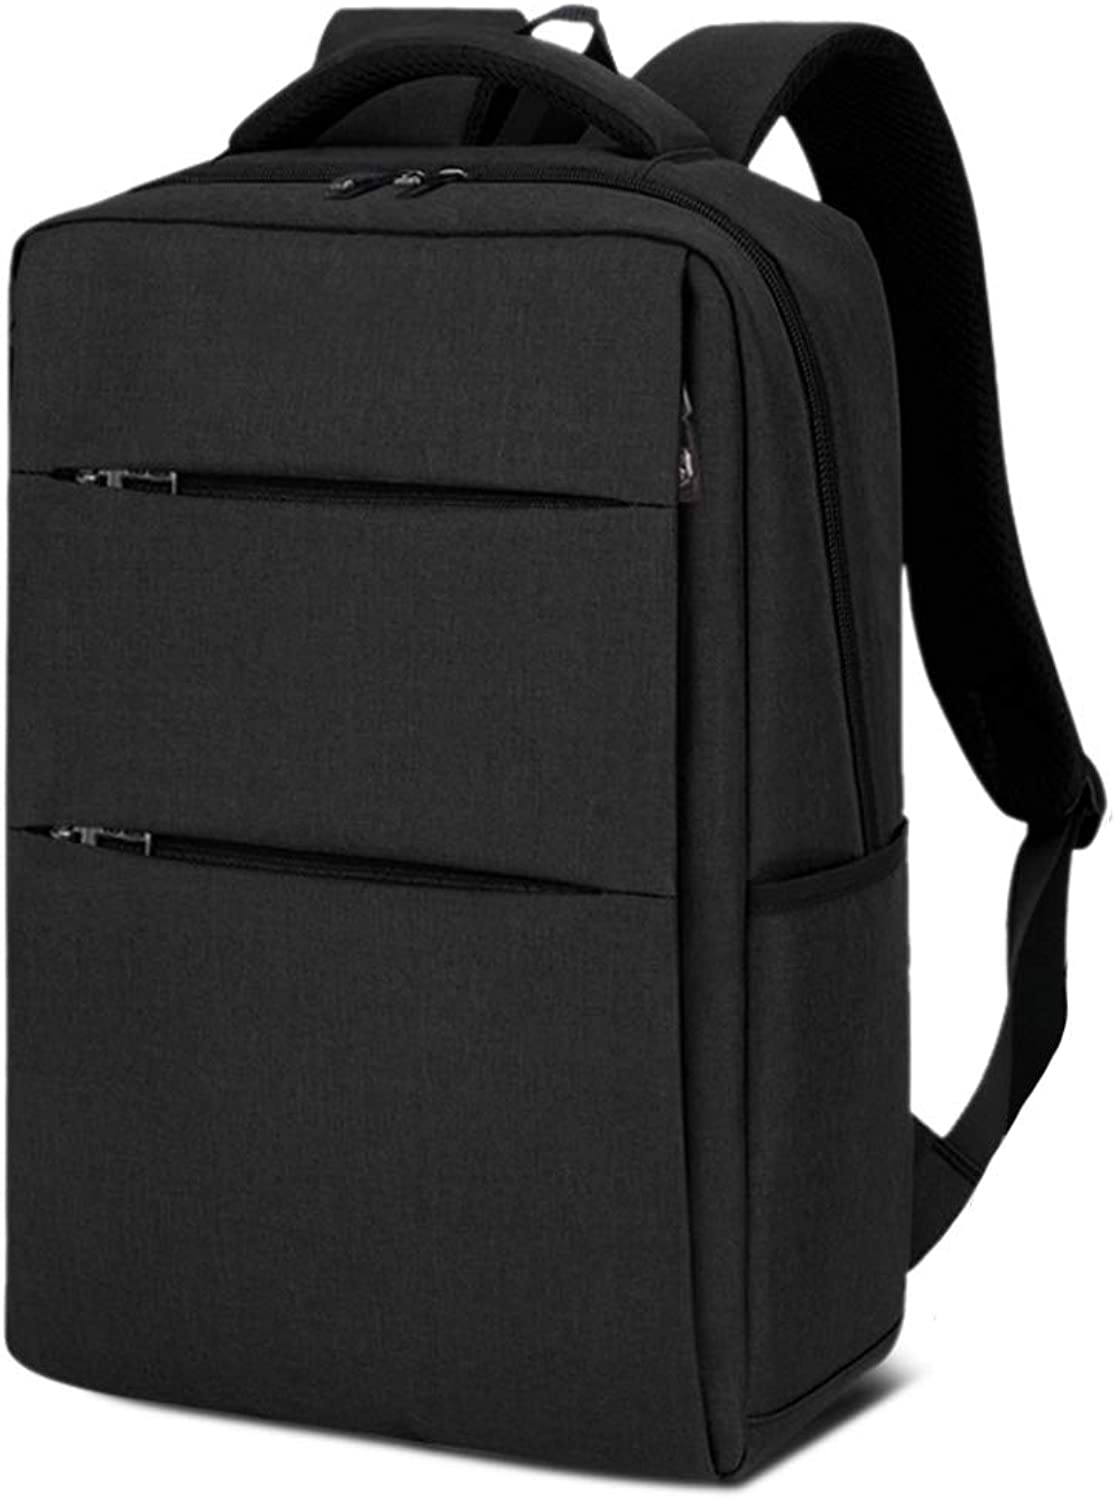 cc0ec79eb9e7 Ultralight Bag Travel Business Backpack Backpack,College Laptop ...